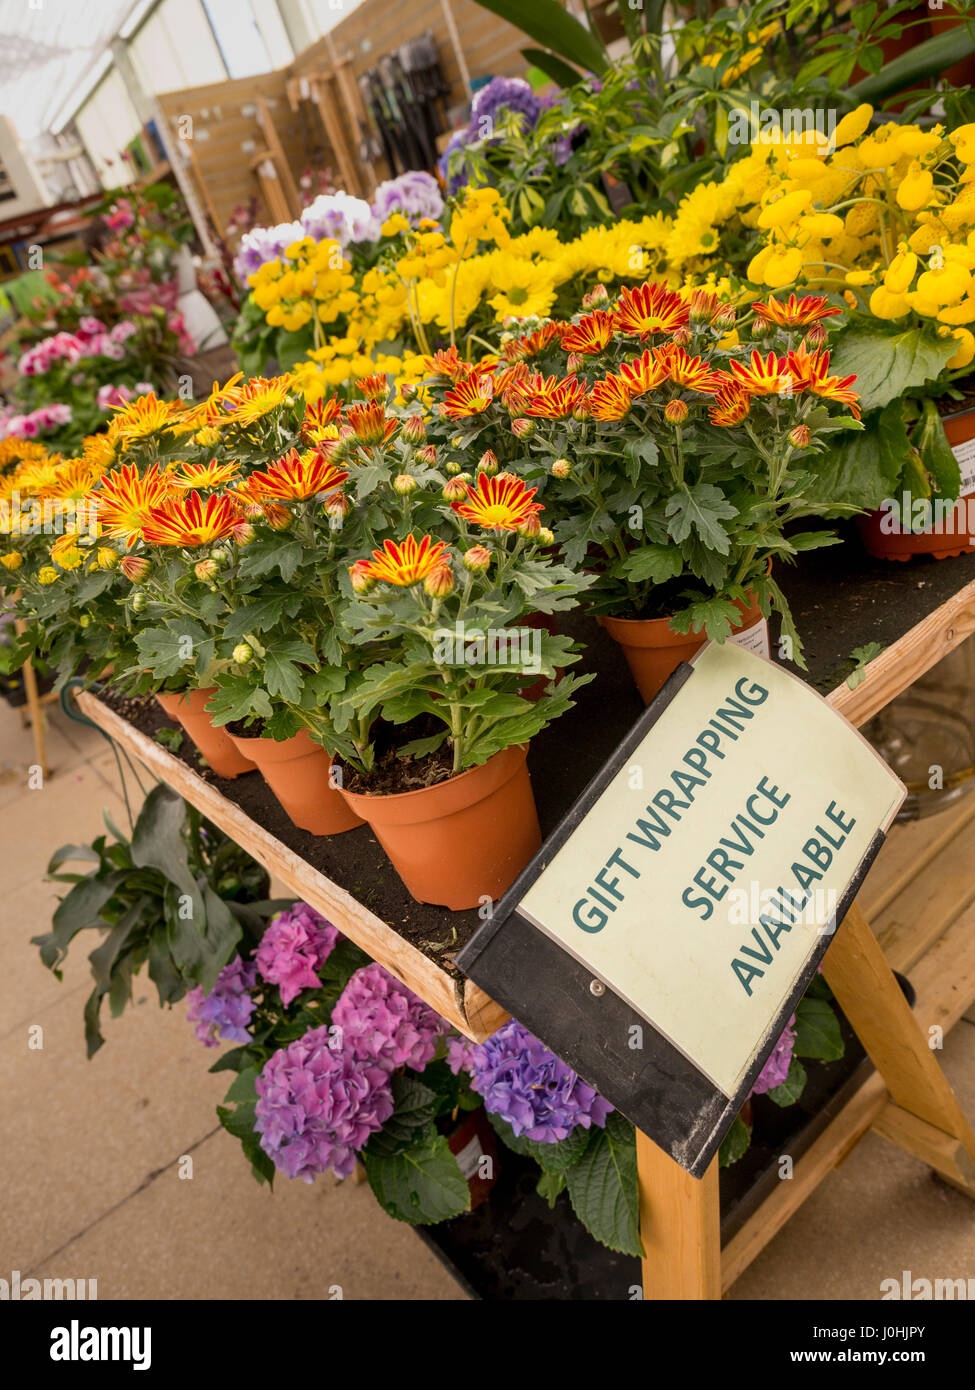 'Gift wrapping service available' sign on Flowering plants display for sale at garden centre - Stock Image